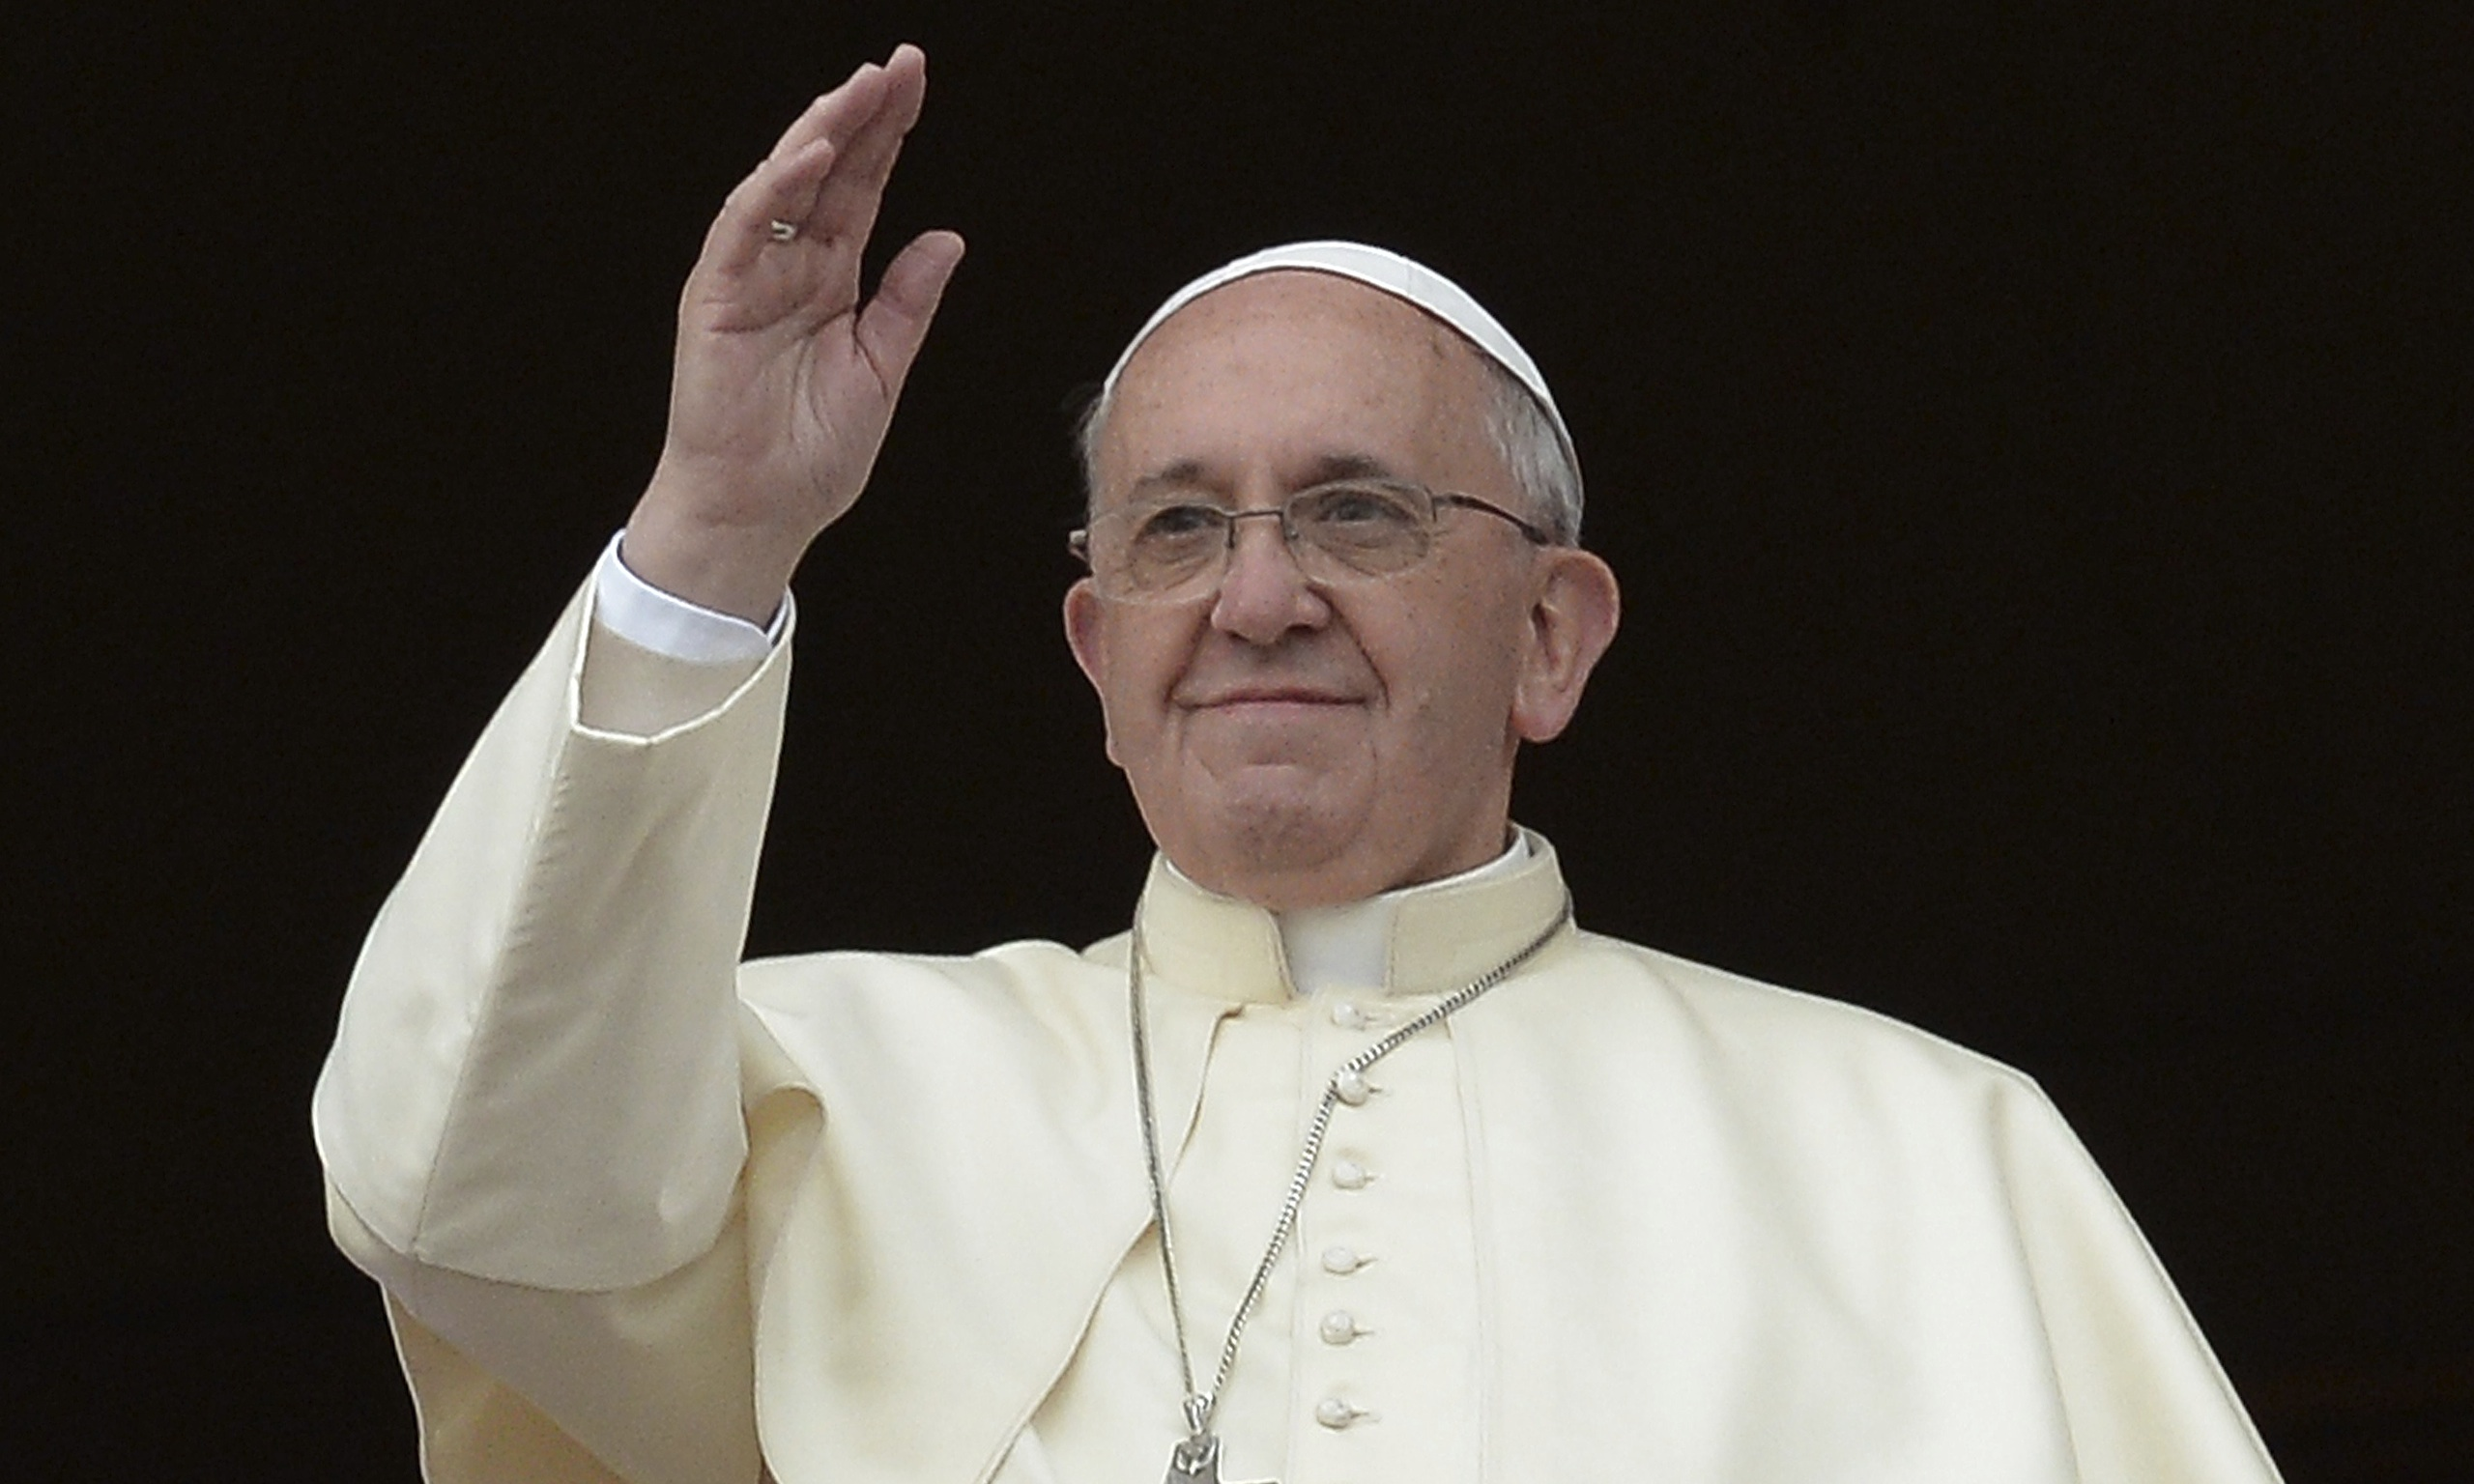 UCC environmental leaders laud Pope Francis' encyclical on climate change